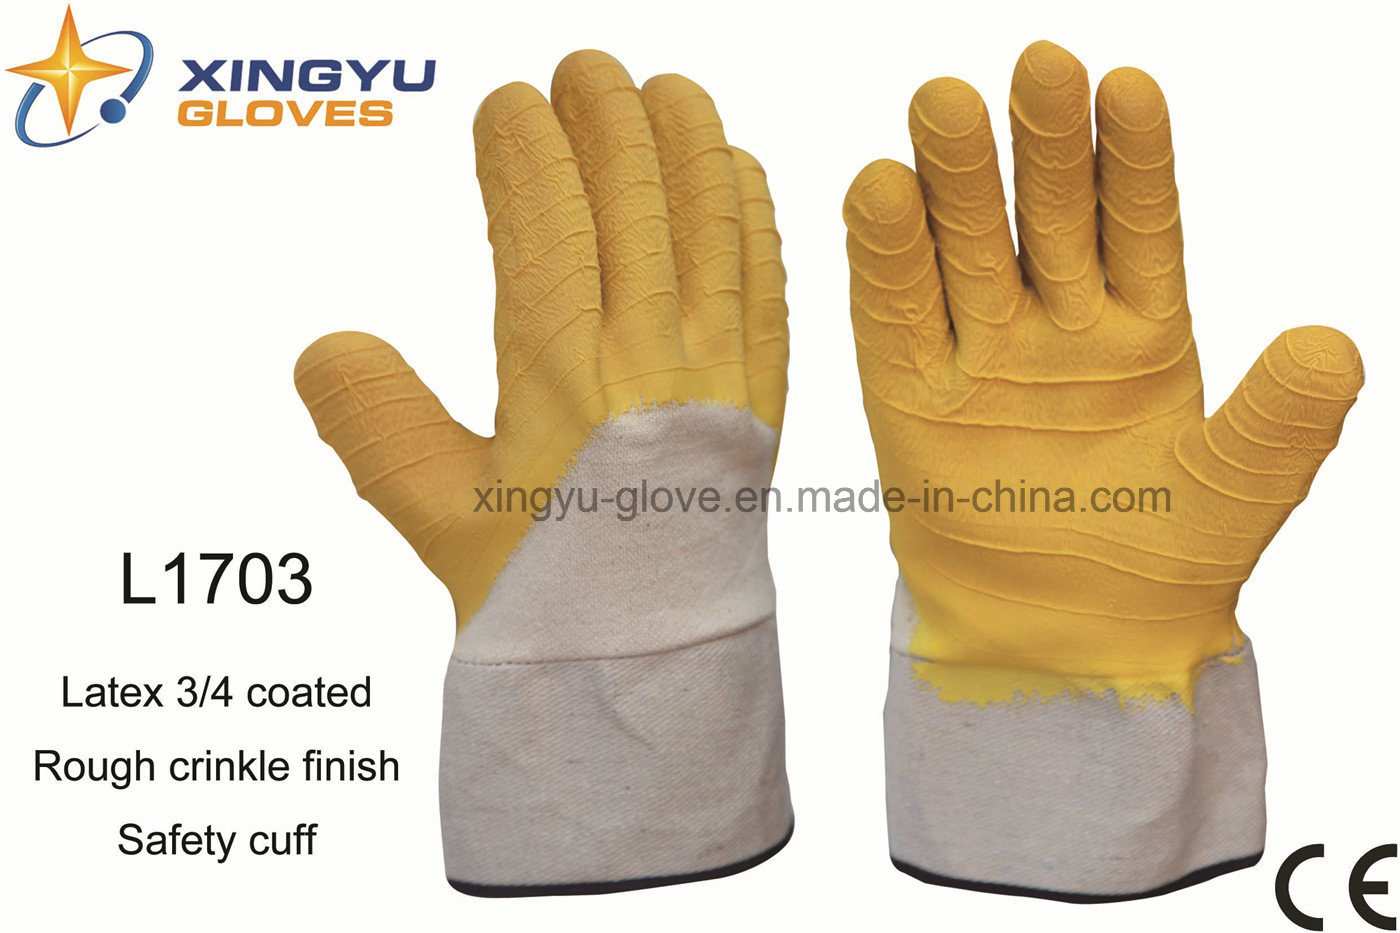 Jersey Liner Latex 3/4 Coated Safety Cuff Work Glove (L1703)